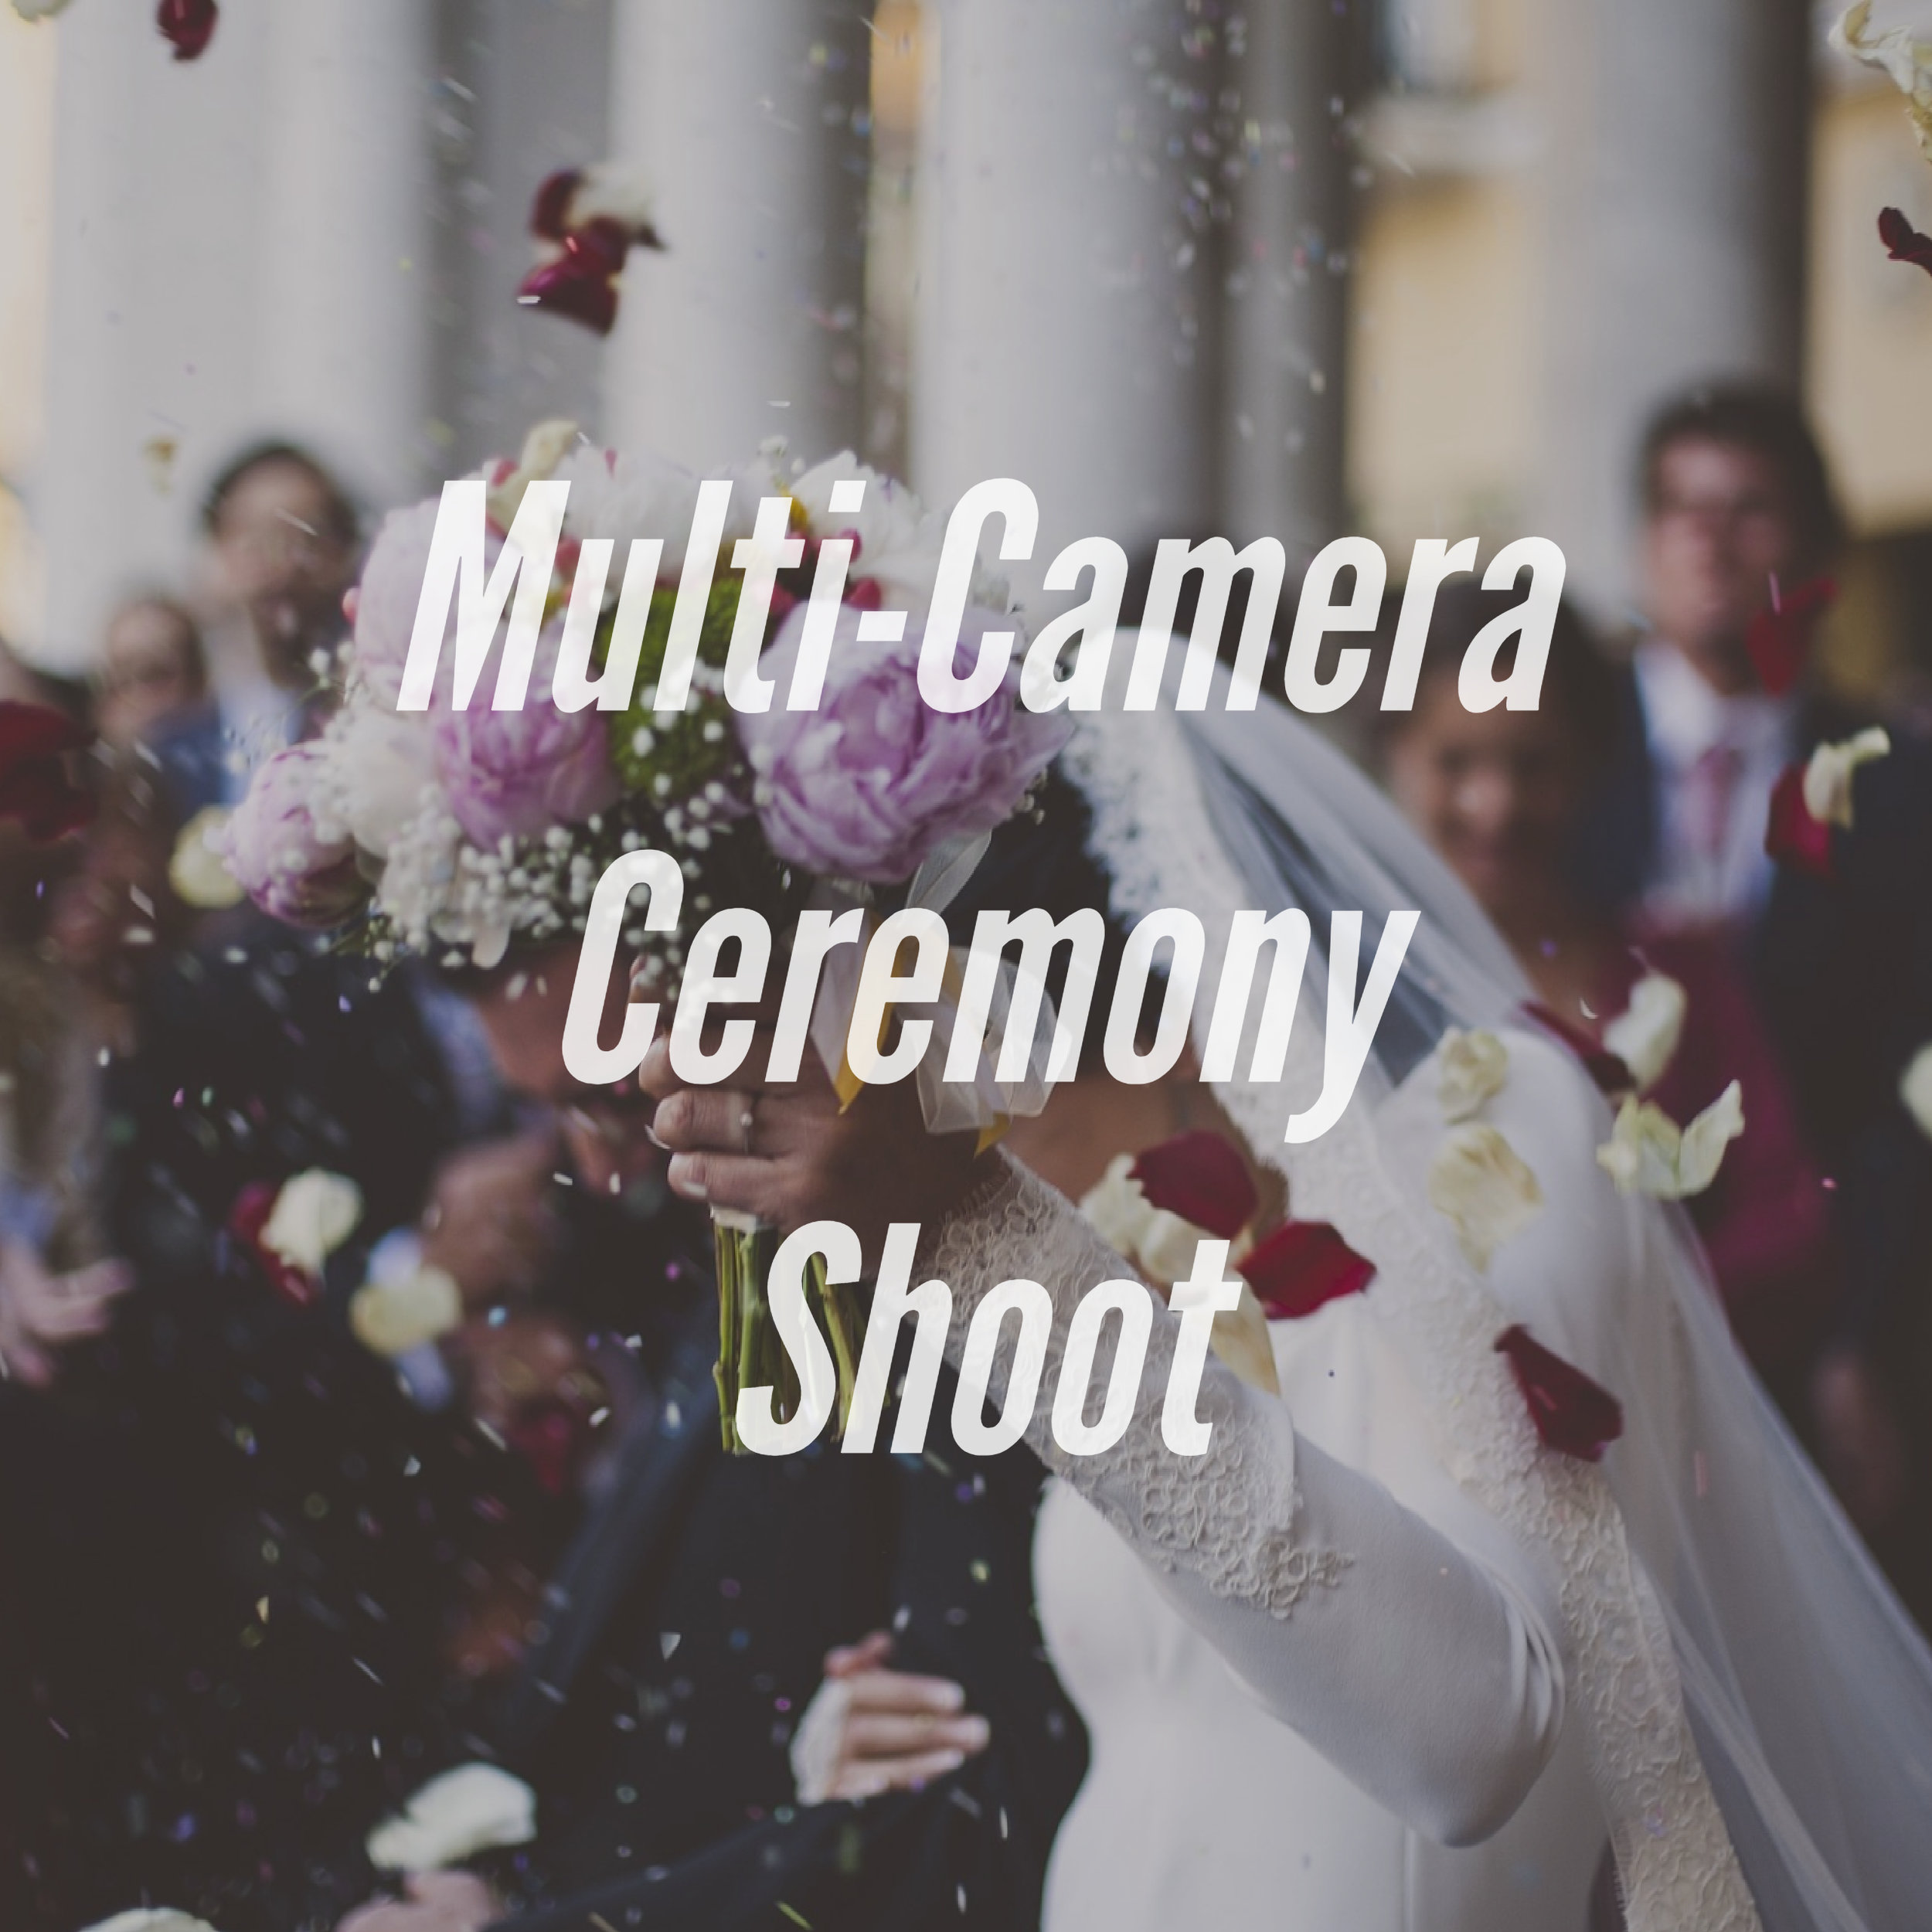 The multicamera ceremony shoot is an additional video that captures the entire length of your ceremony from beginning to end so you can watch and relive your moment forever.